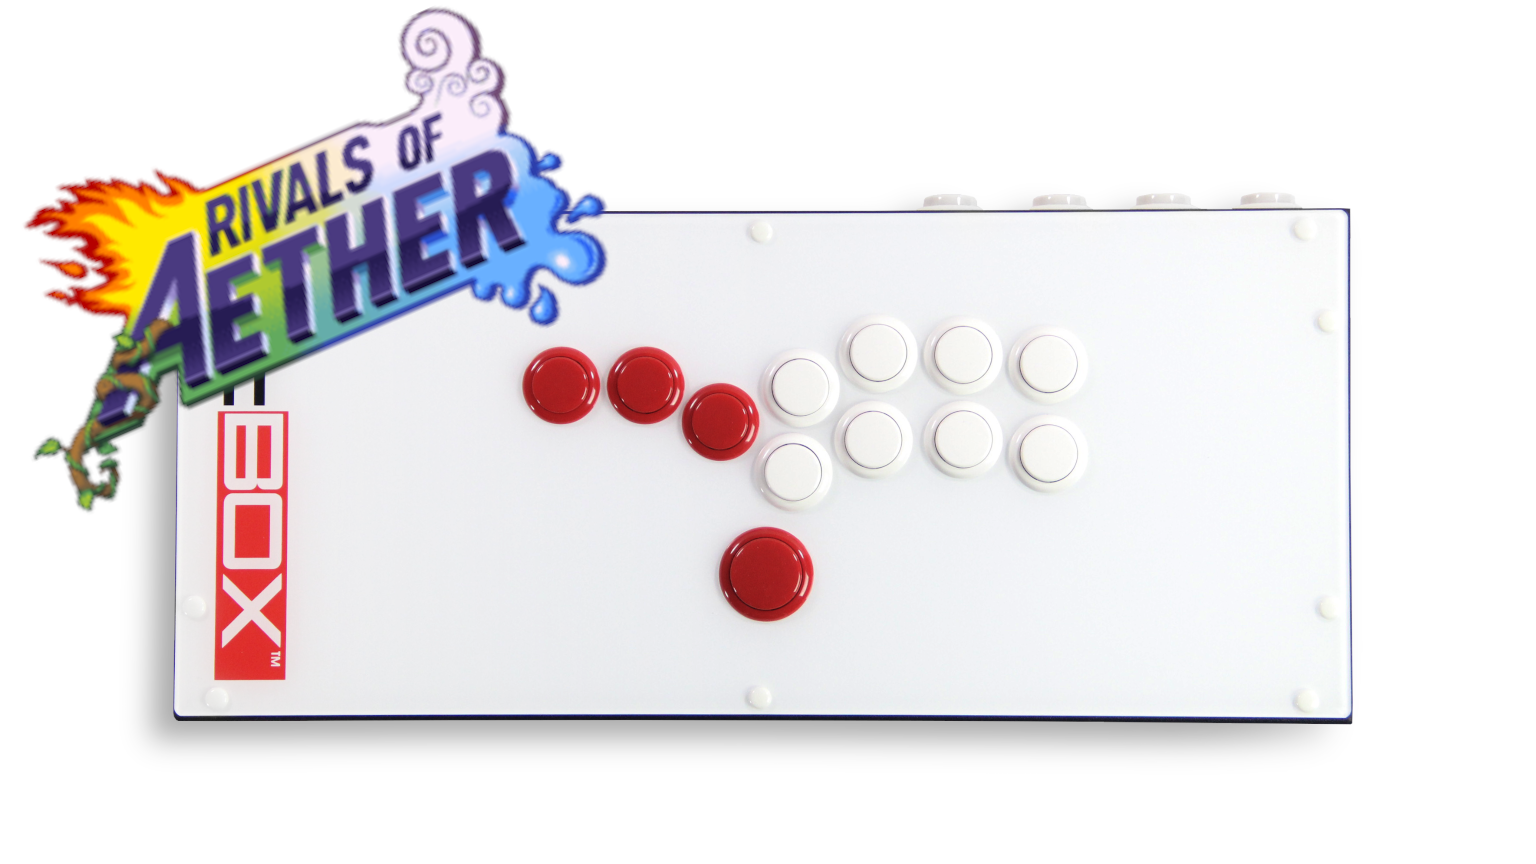 Rivals of Aether on Hit Box